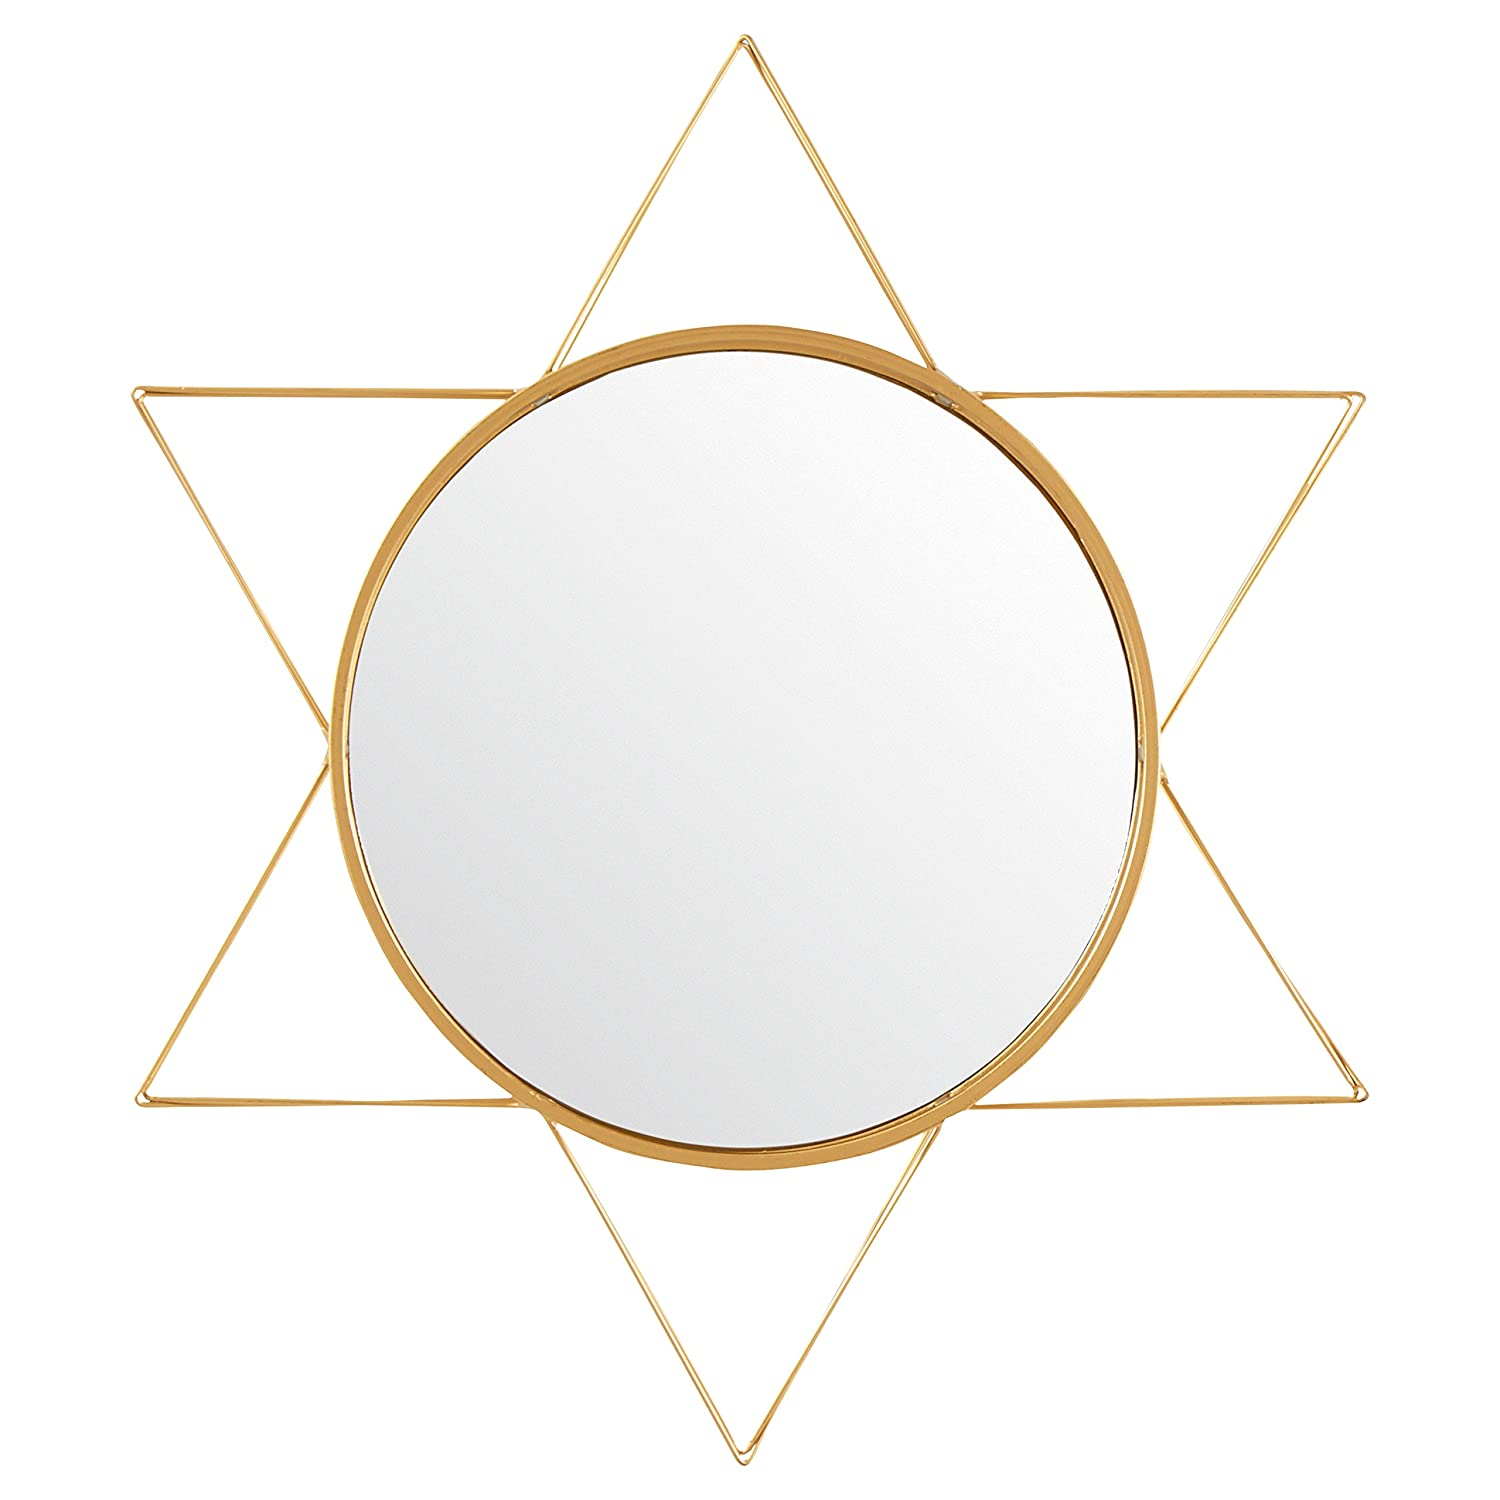 Rivet Modern 3-D Star Shaped Metal Mirror, 22.5